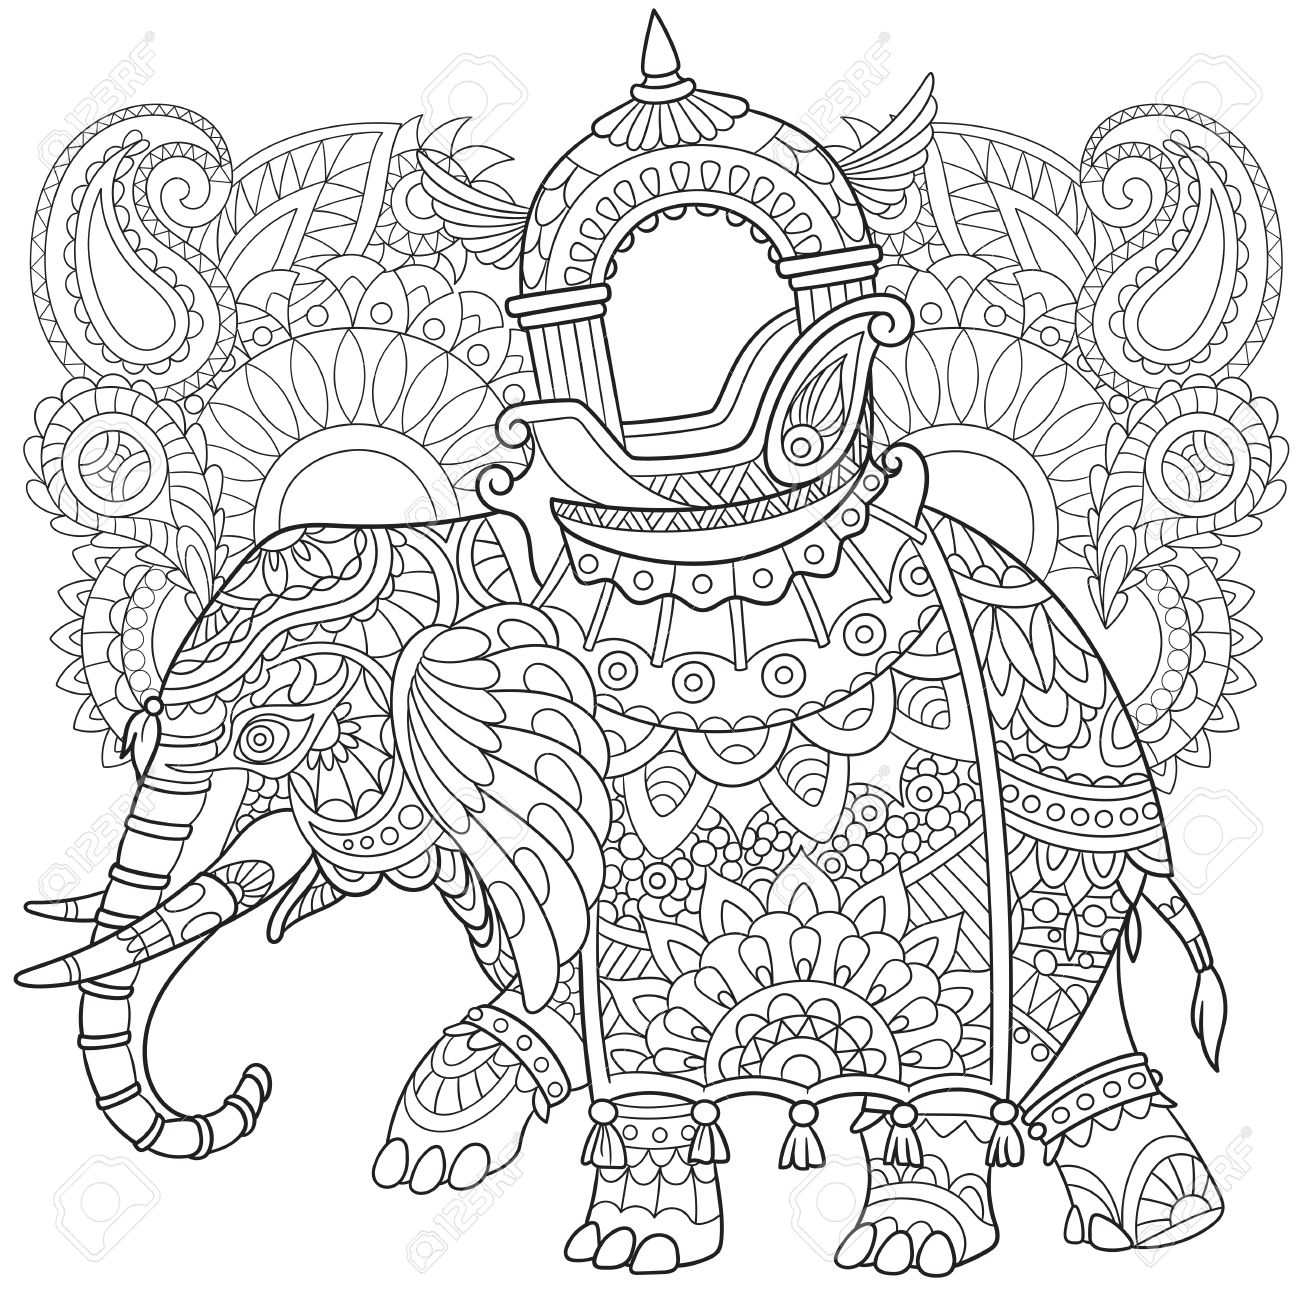 1300x1300 Cartoon Elephant With Paisley And Mehndi Symbols Sketch For Adult